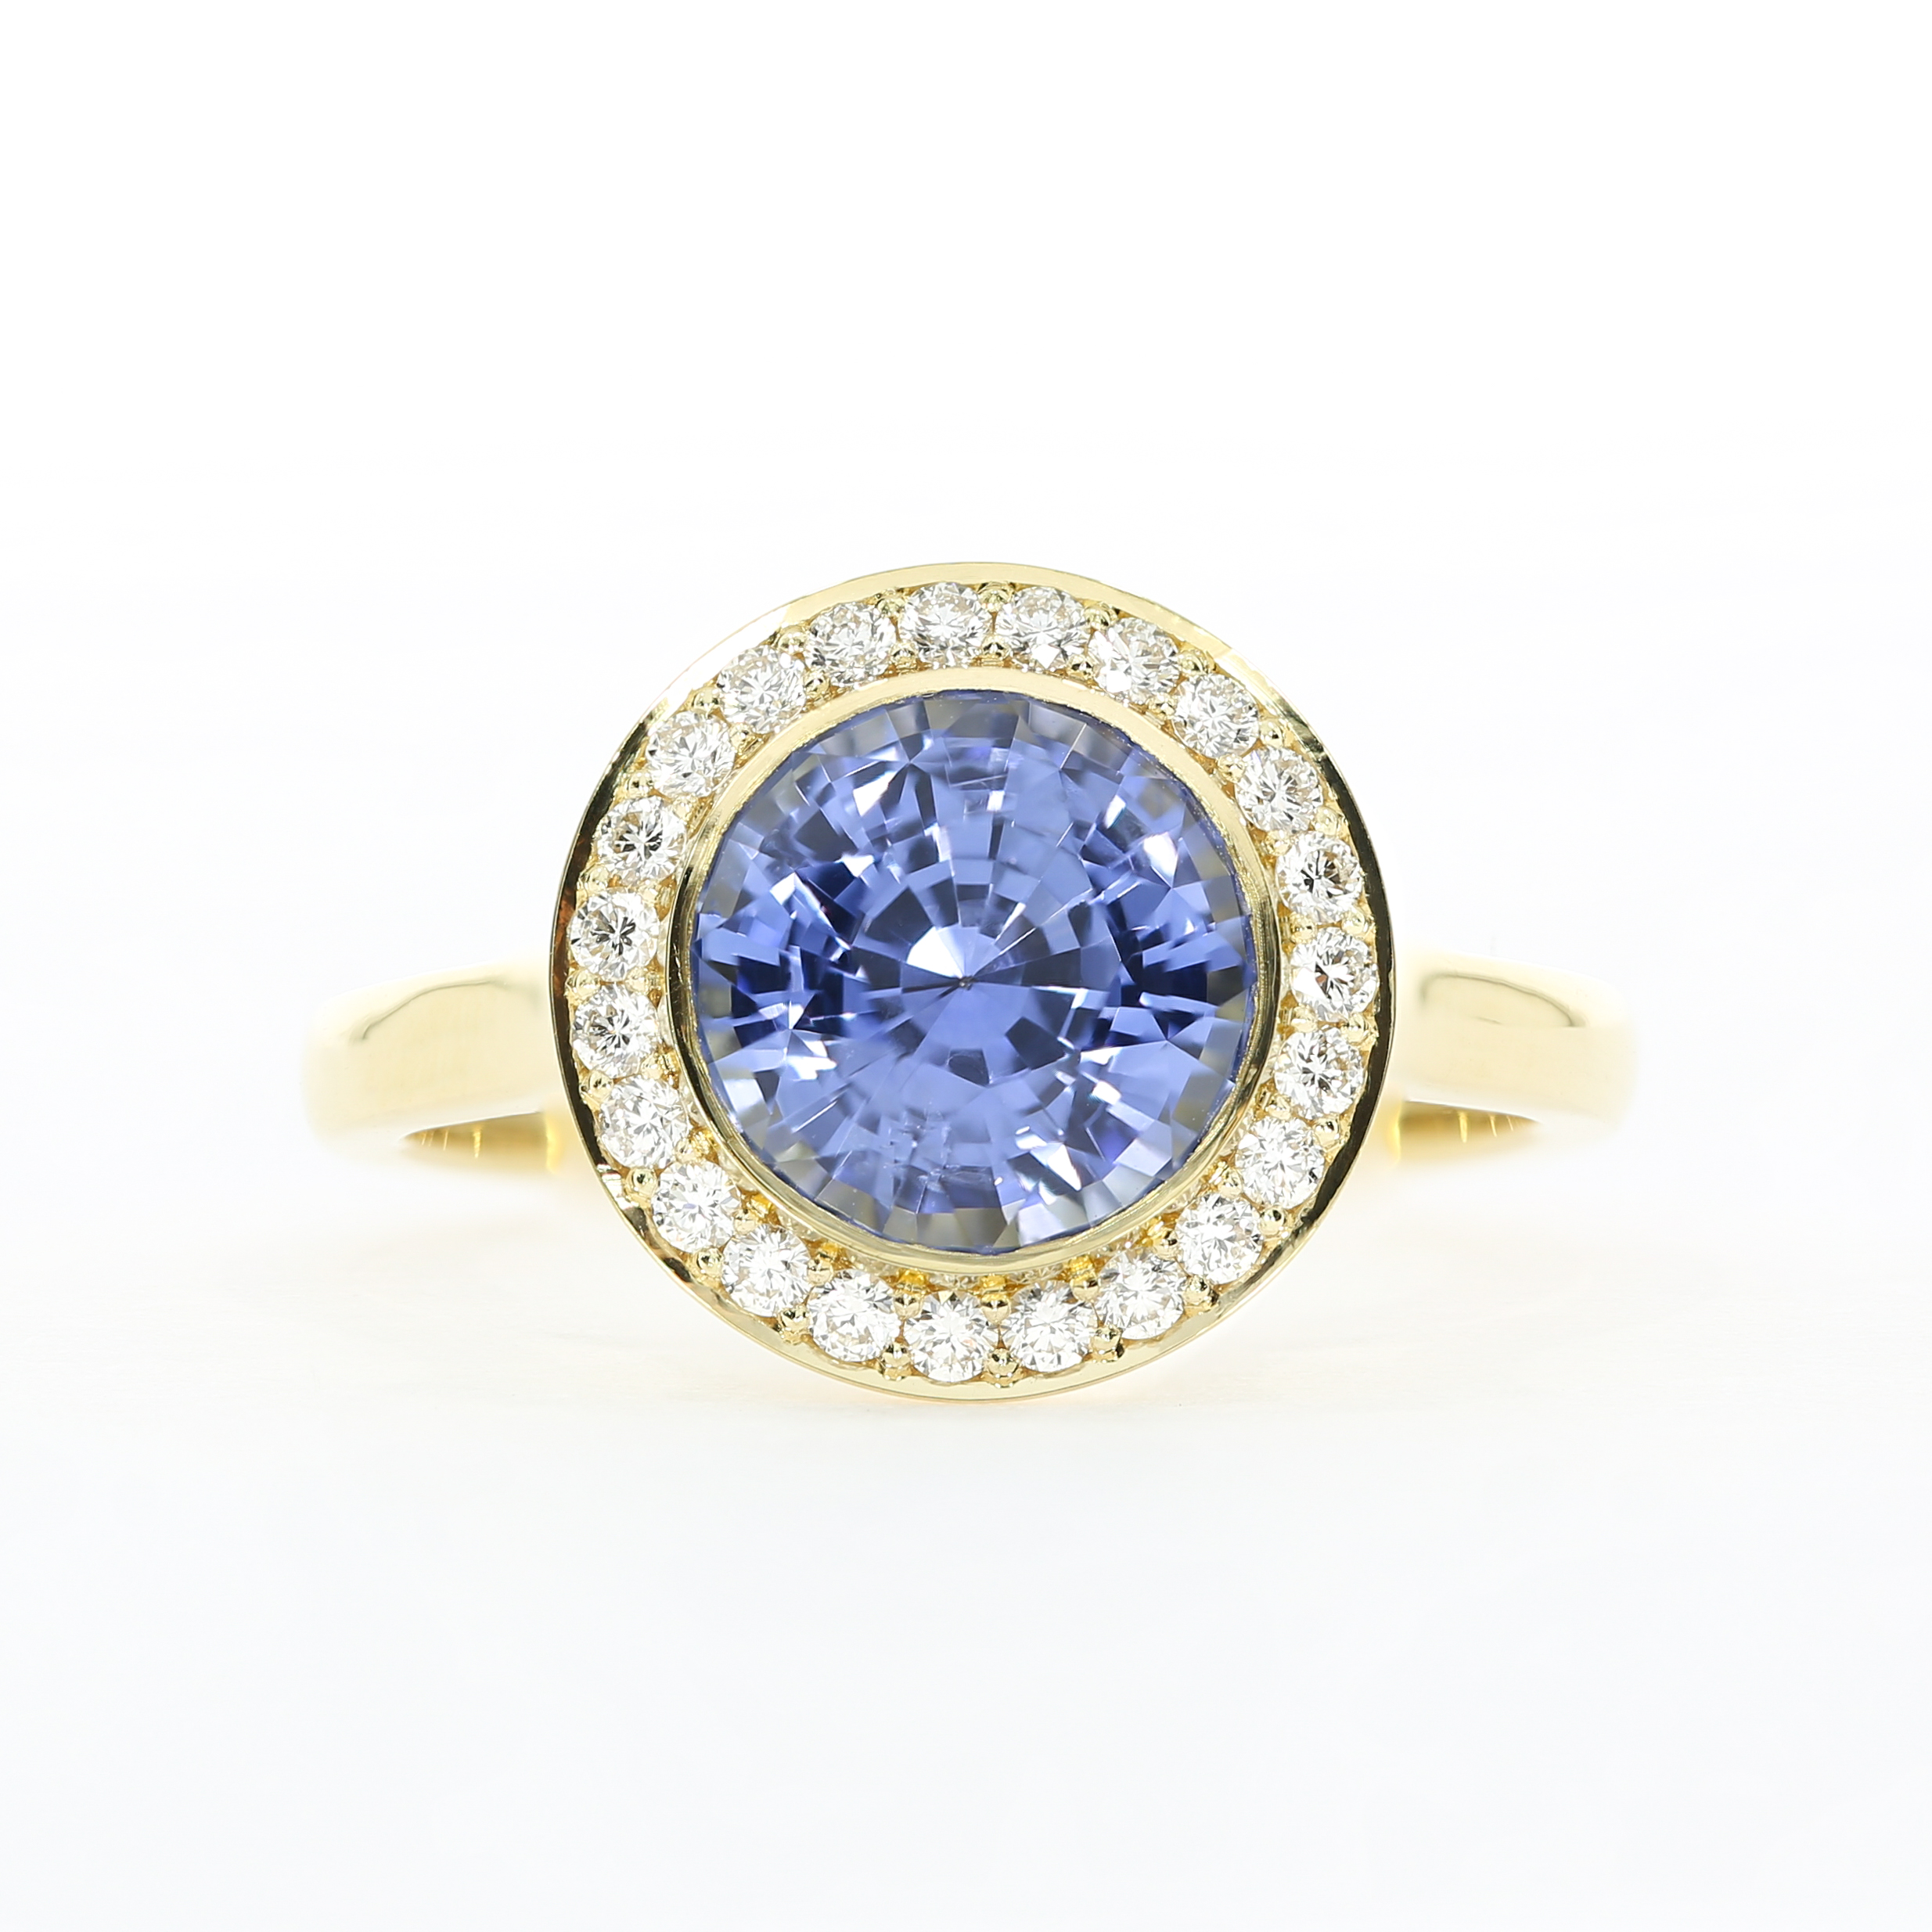 A custom take on the  Faye  engagement ring, using a bold sapphire centre stone